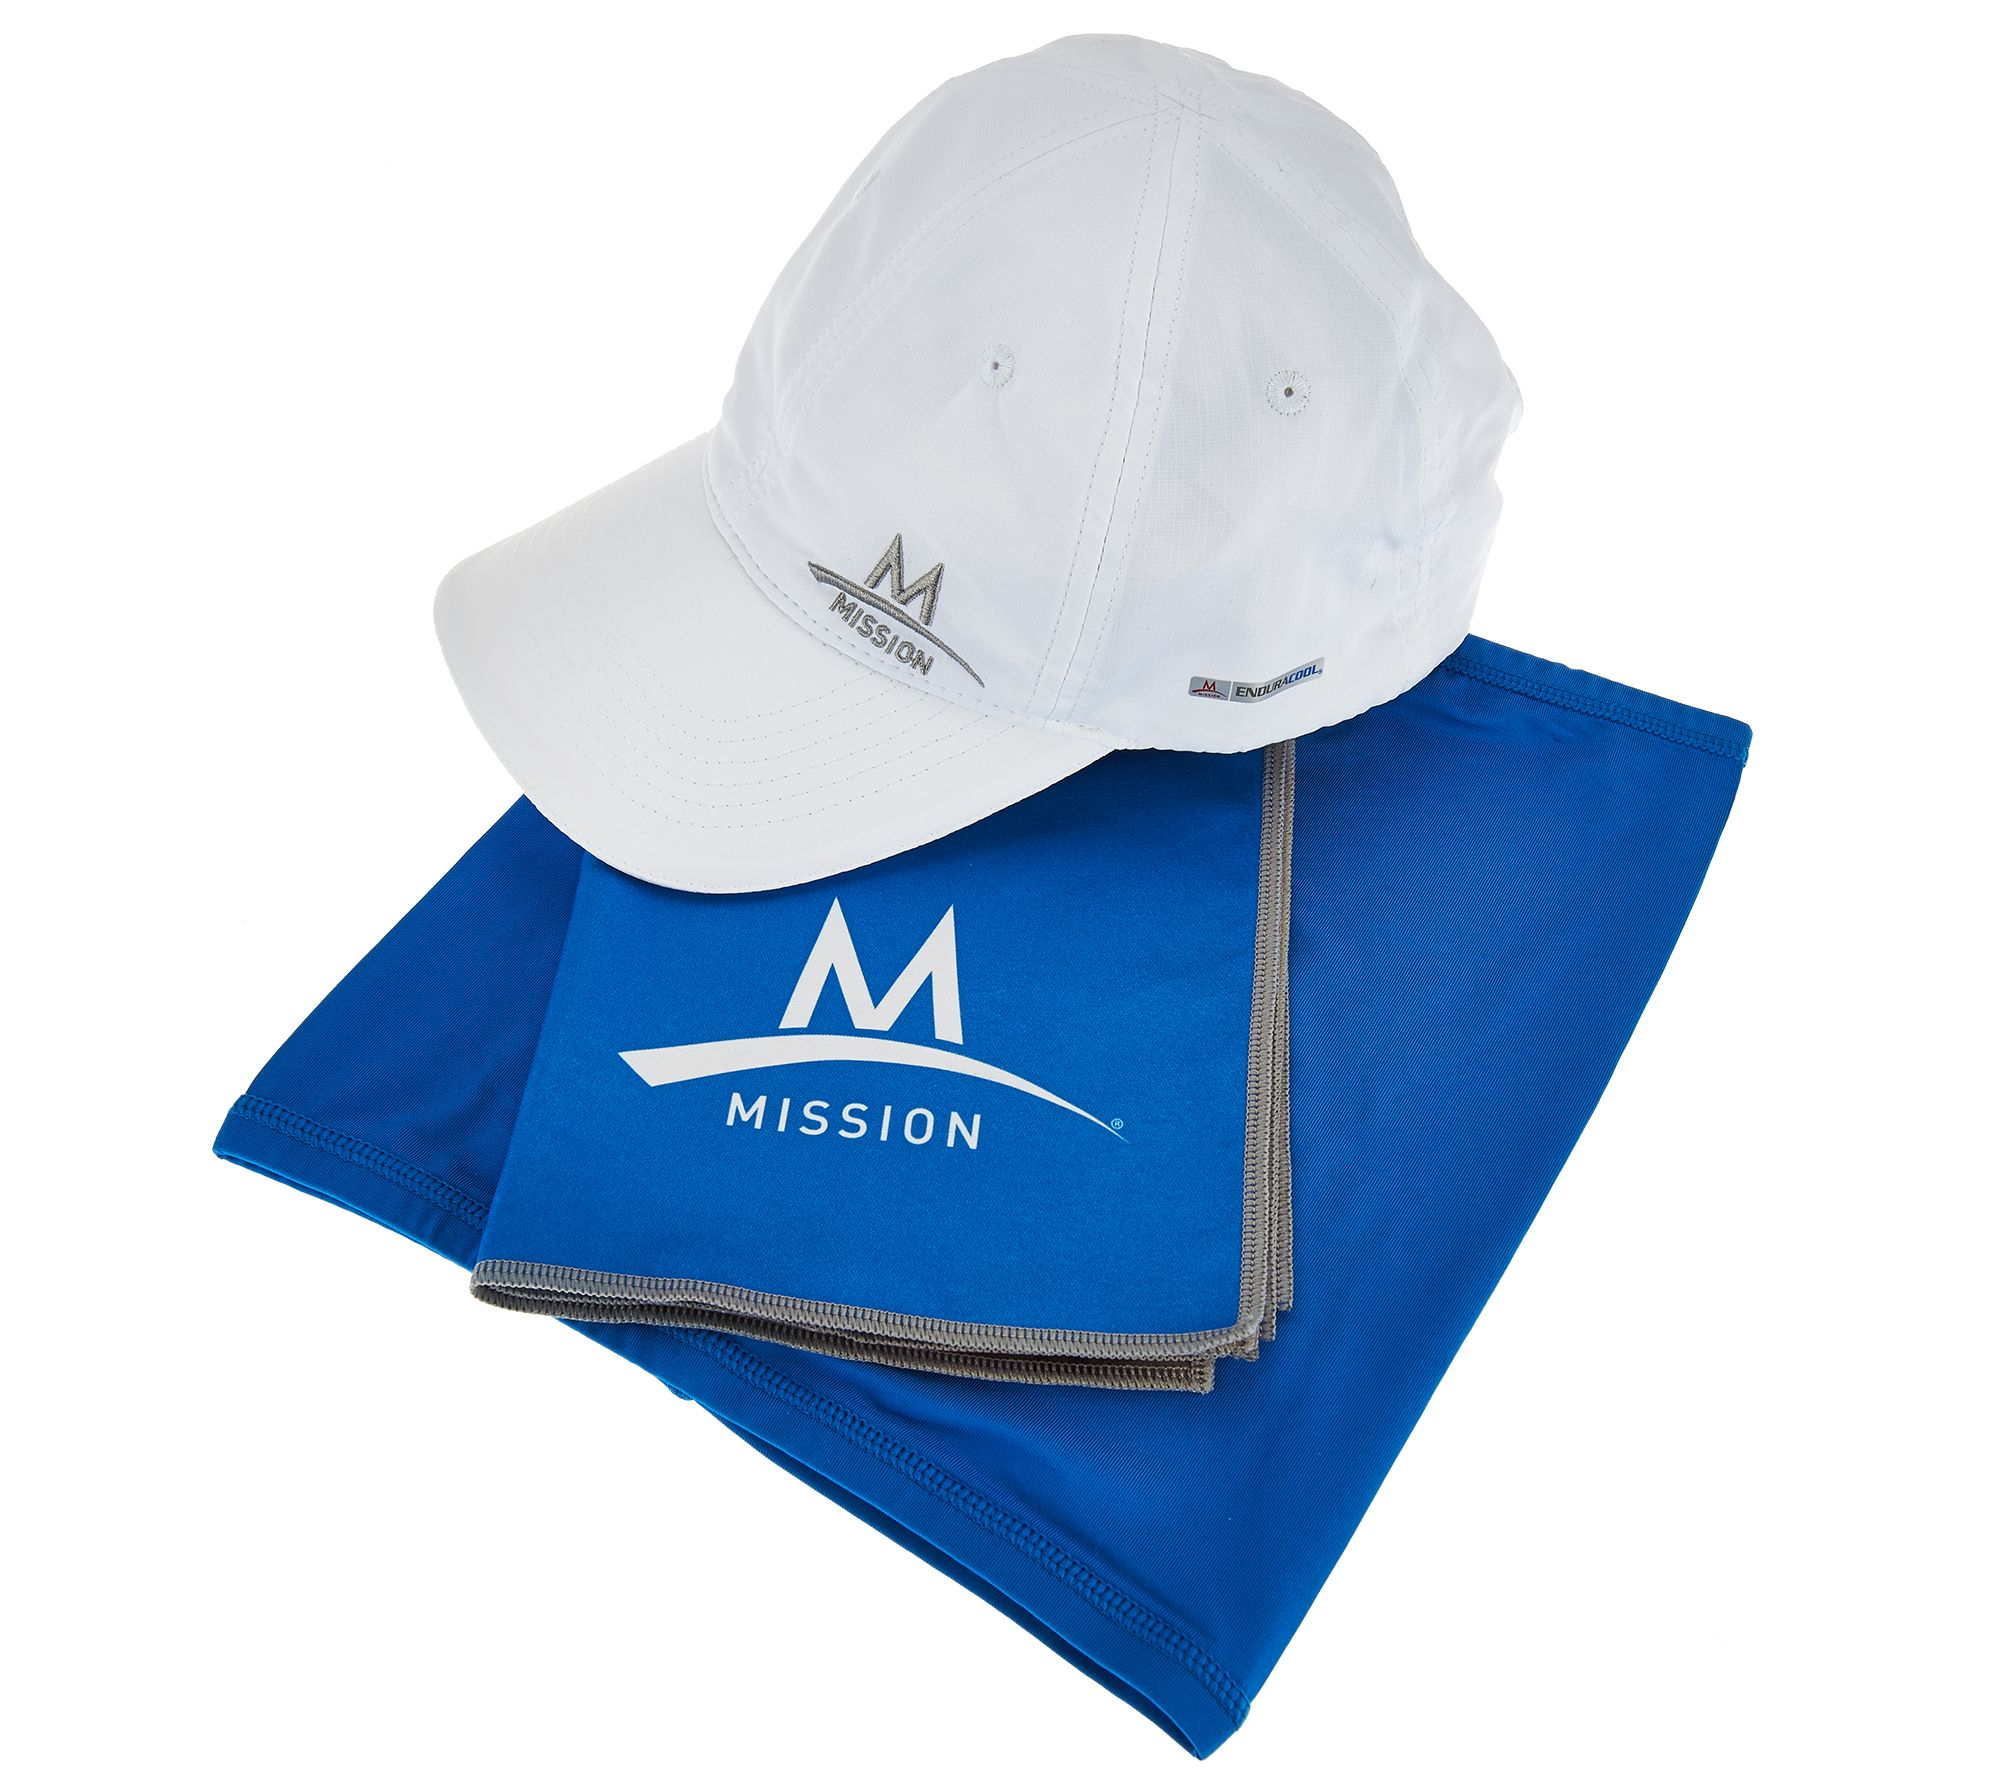 mission cooling towel performance hat and 5 in 1 multi